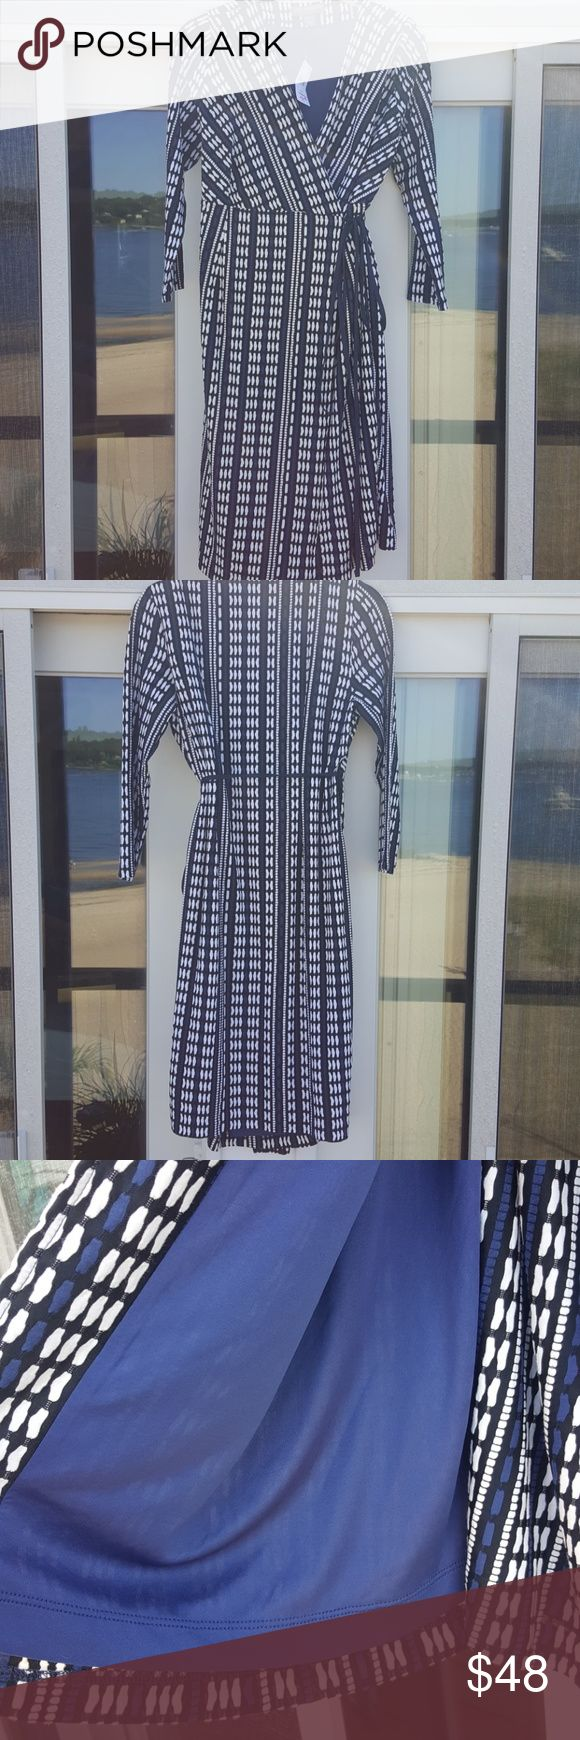 NWT Chic momma! This BRAND NEW WITH TAGS MATERNITY wrap dress is super chic.  Fully lined with a cool pattern of blue, white and black.  Great for work or a night out.  *A Pea in the Pod recommends that you purchase your regular pre- pregnancy size USA.  Dress was originally $128, marked down to $99.99 A Pea in the Pod Dresses